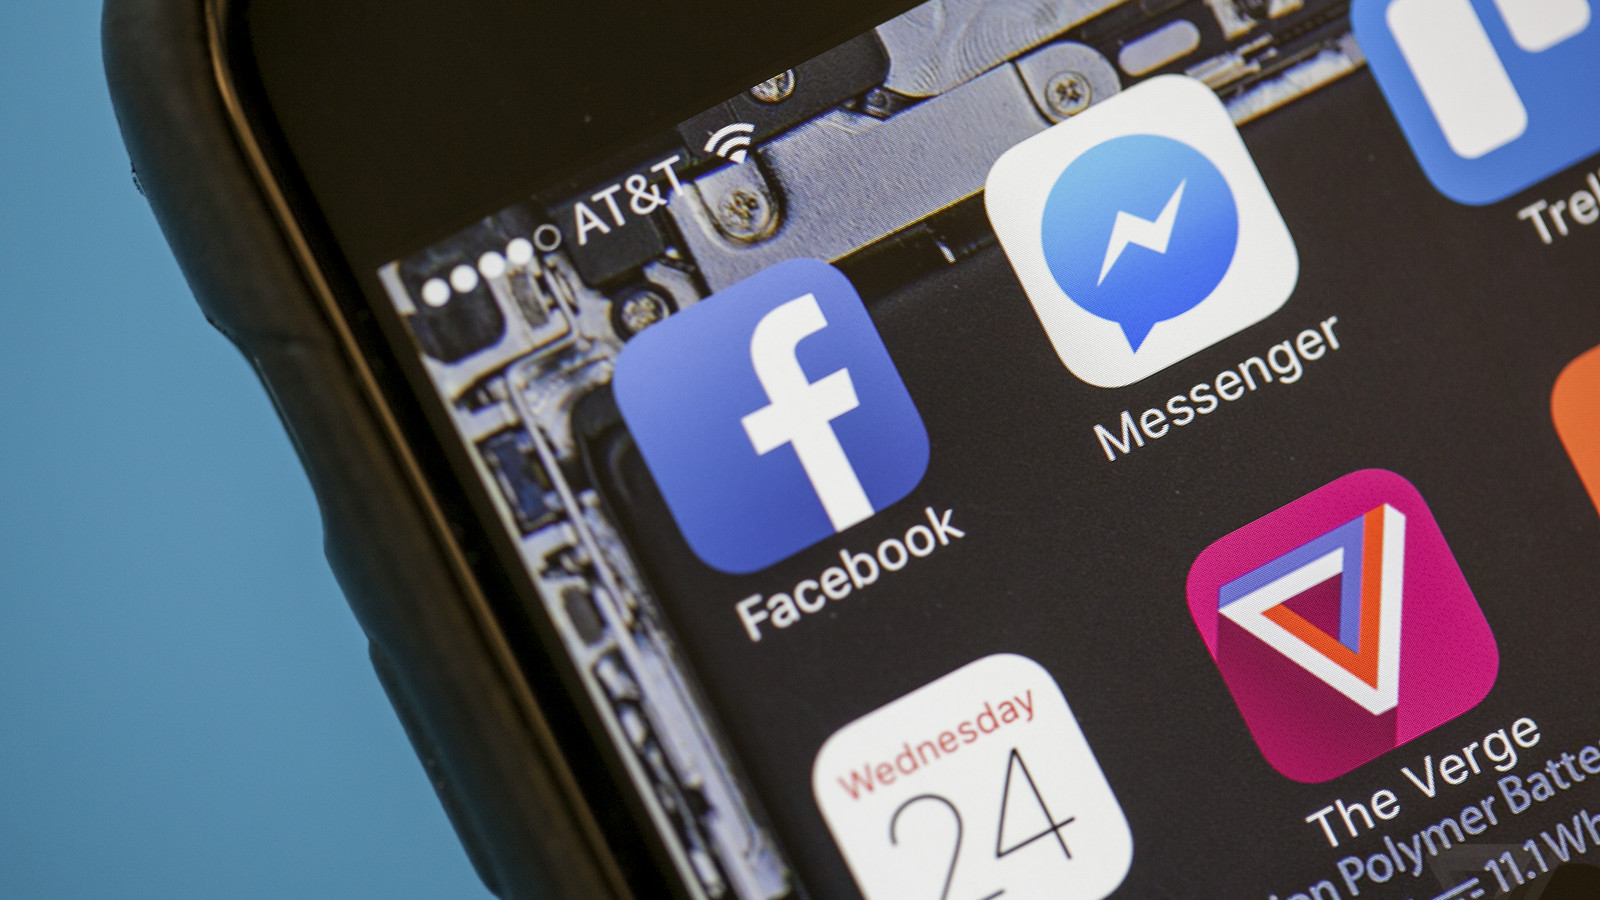 Why Zynga is getting behind Messenger games